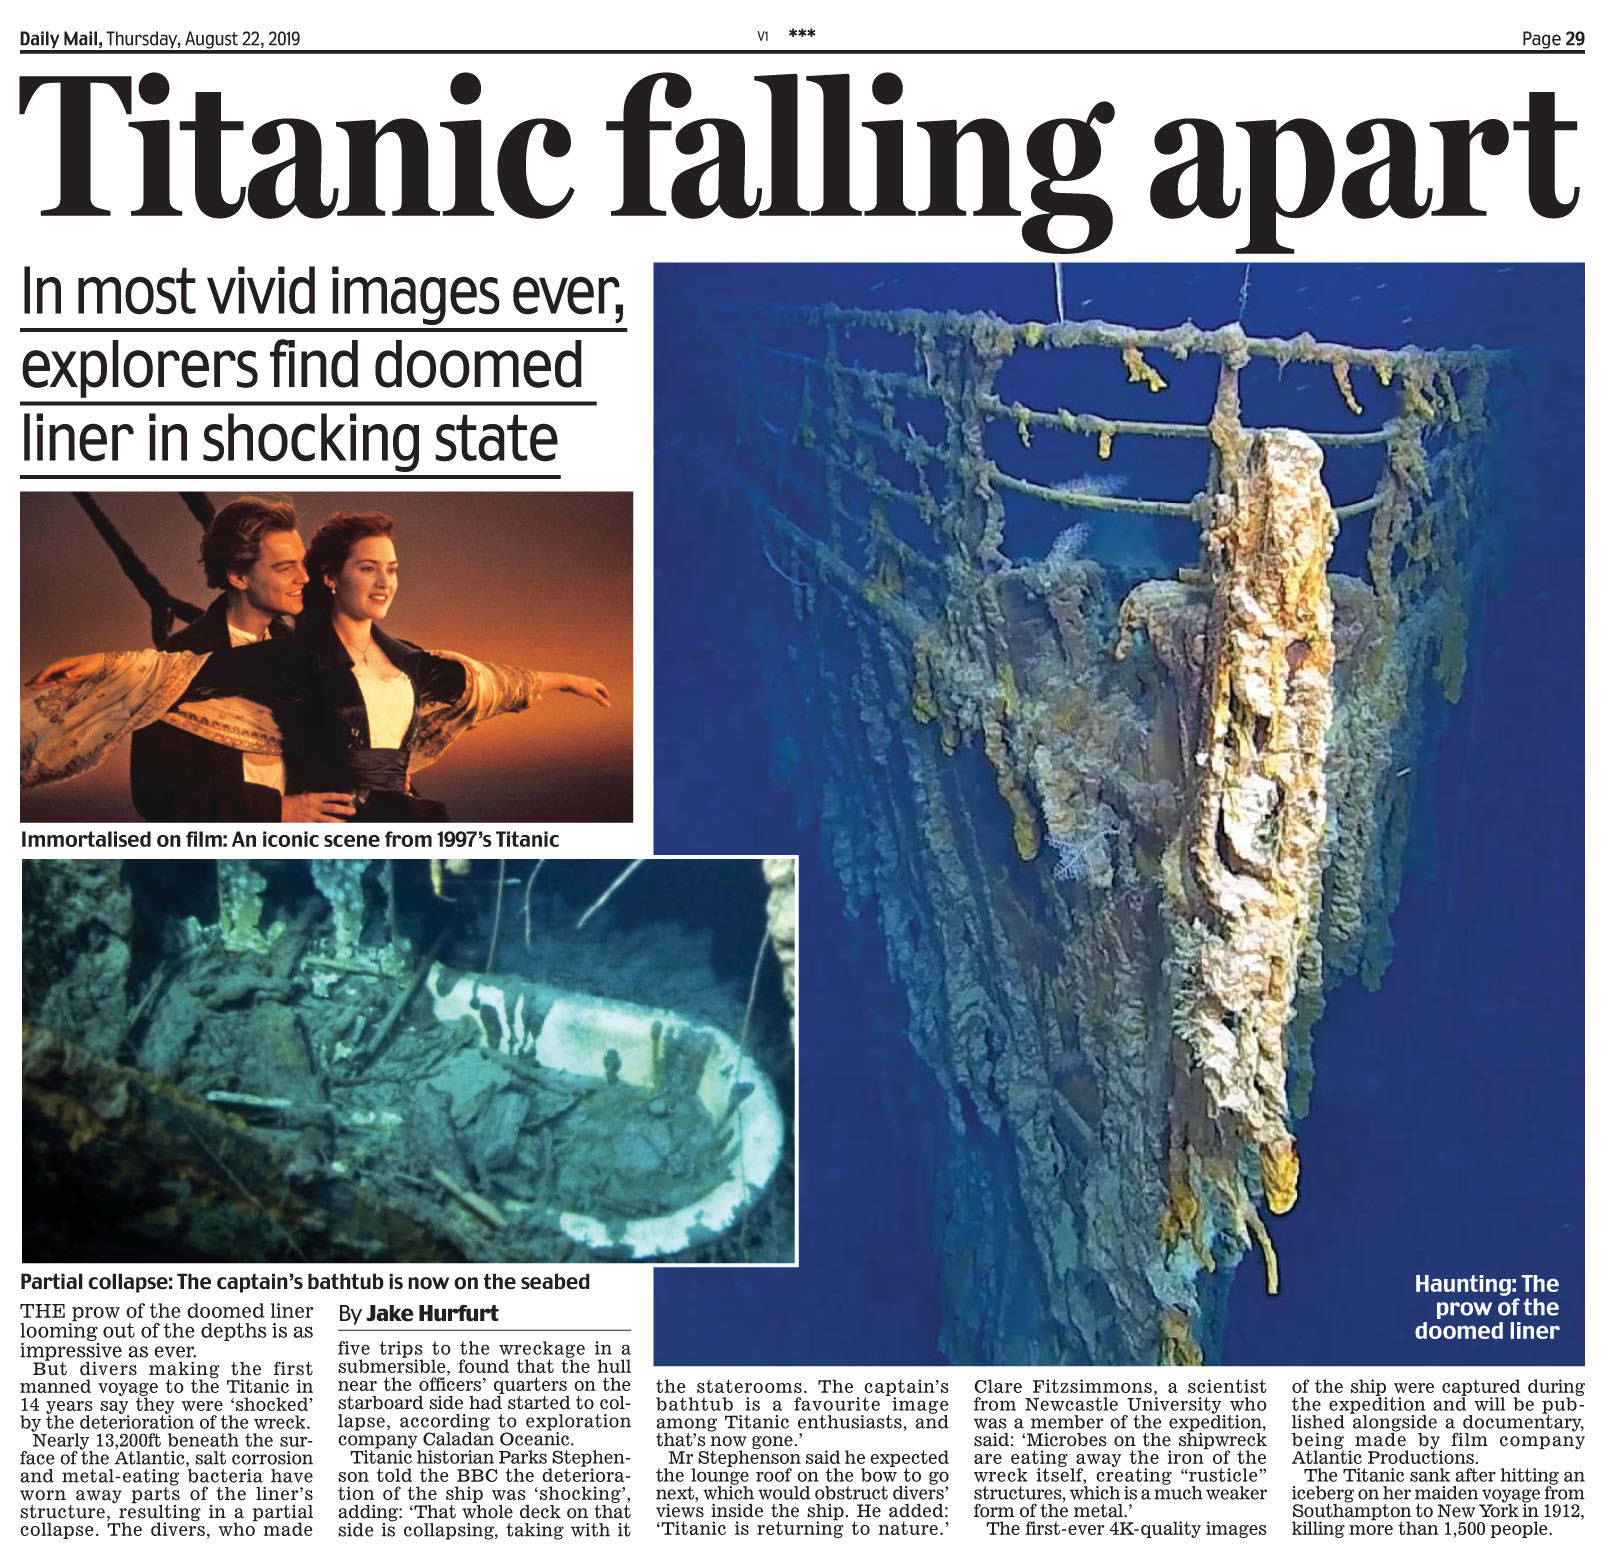 Daily Mail August 22 2019 Titanic.jpg